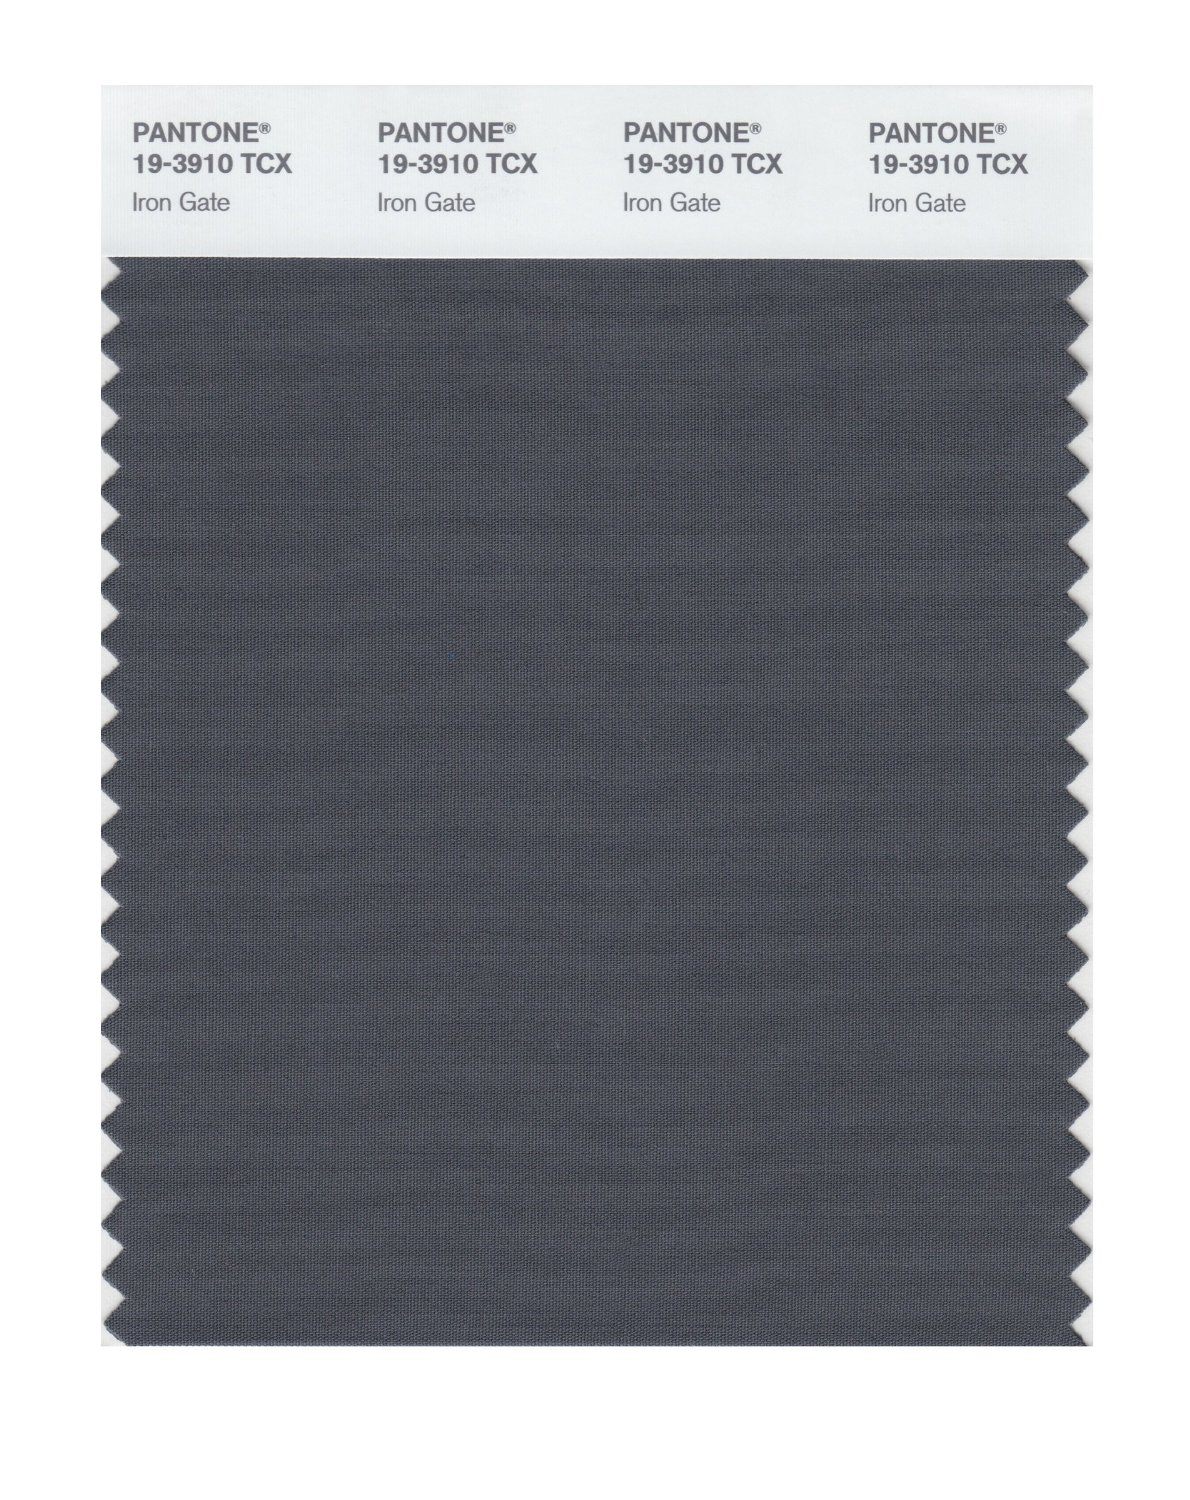 Pantone Smart Swatch 19-3910 Iron Gate